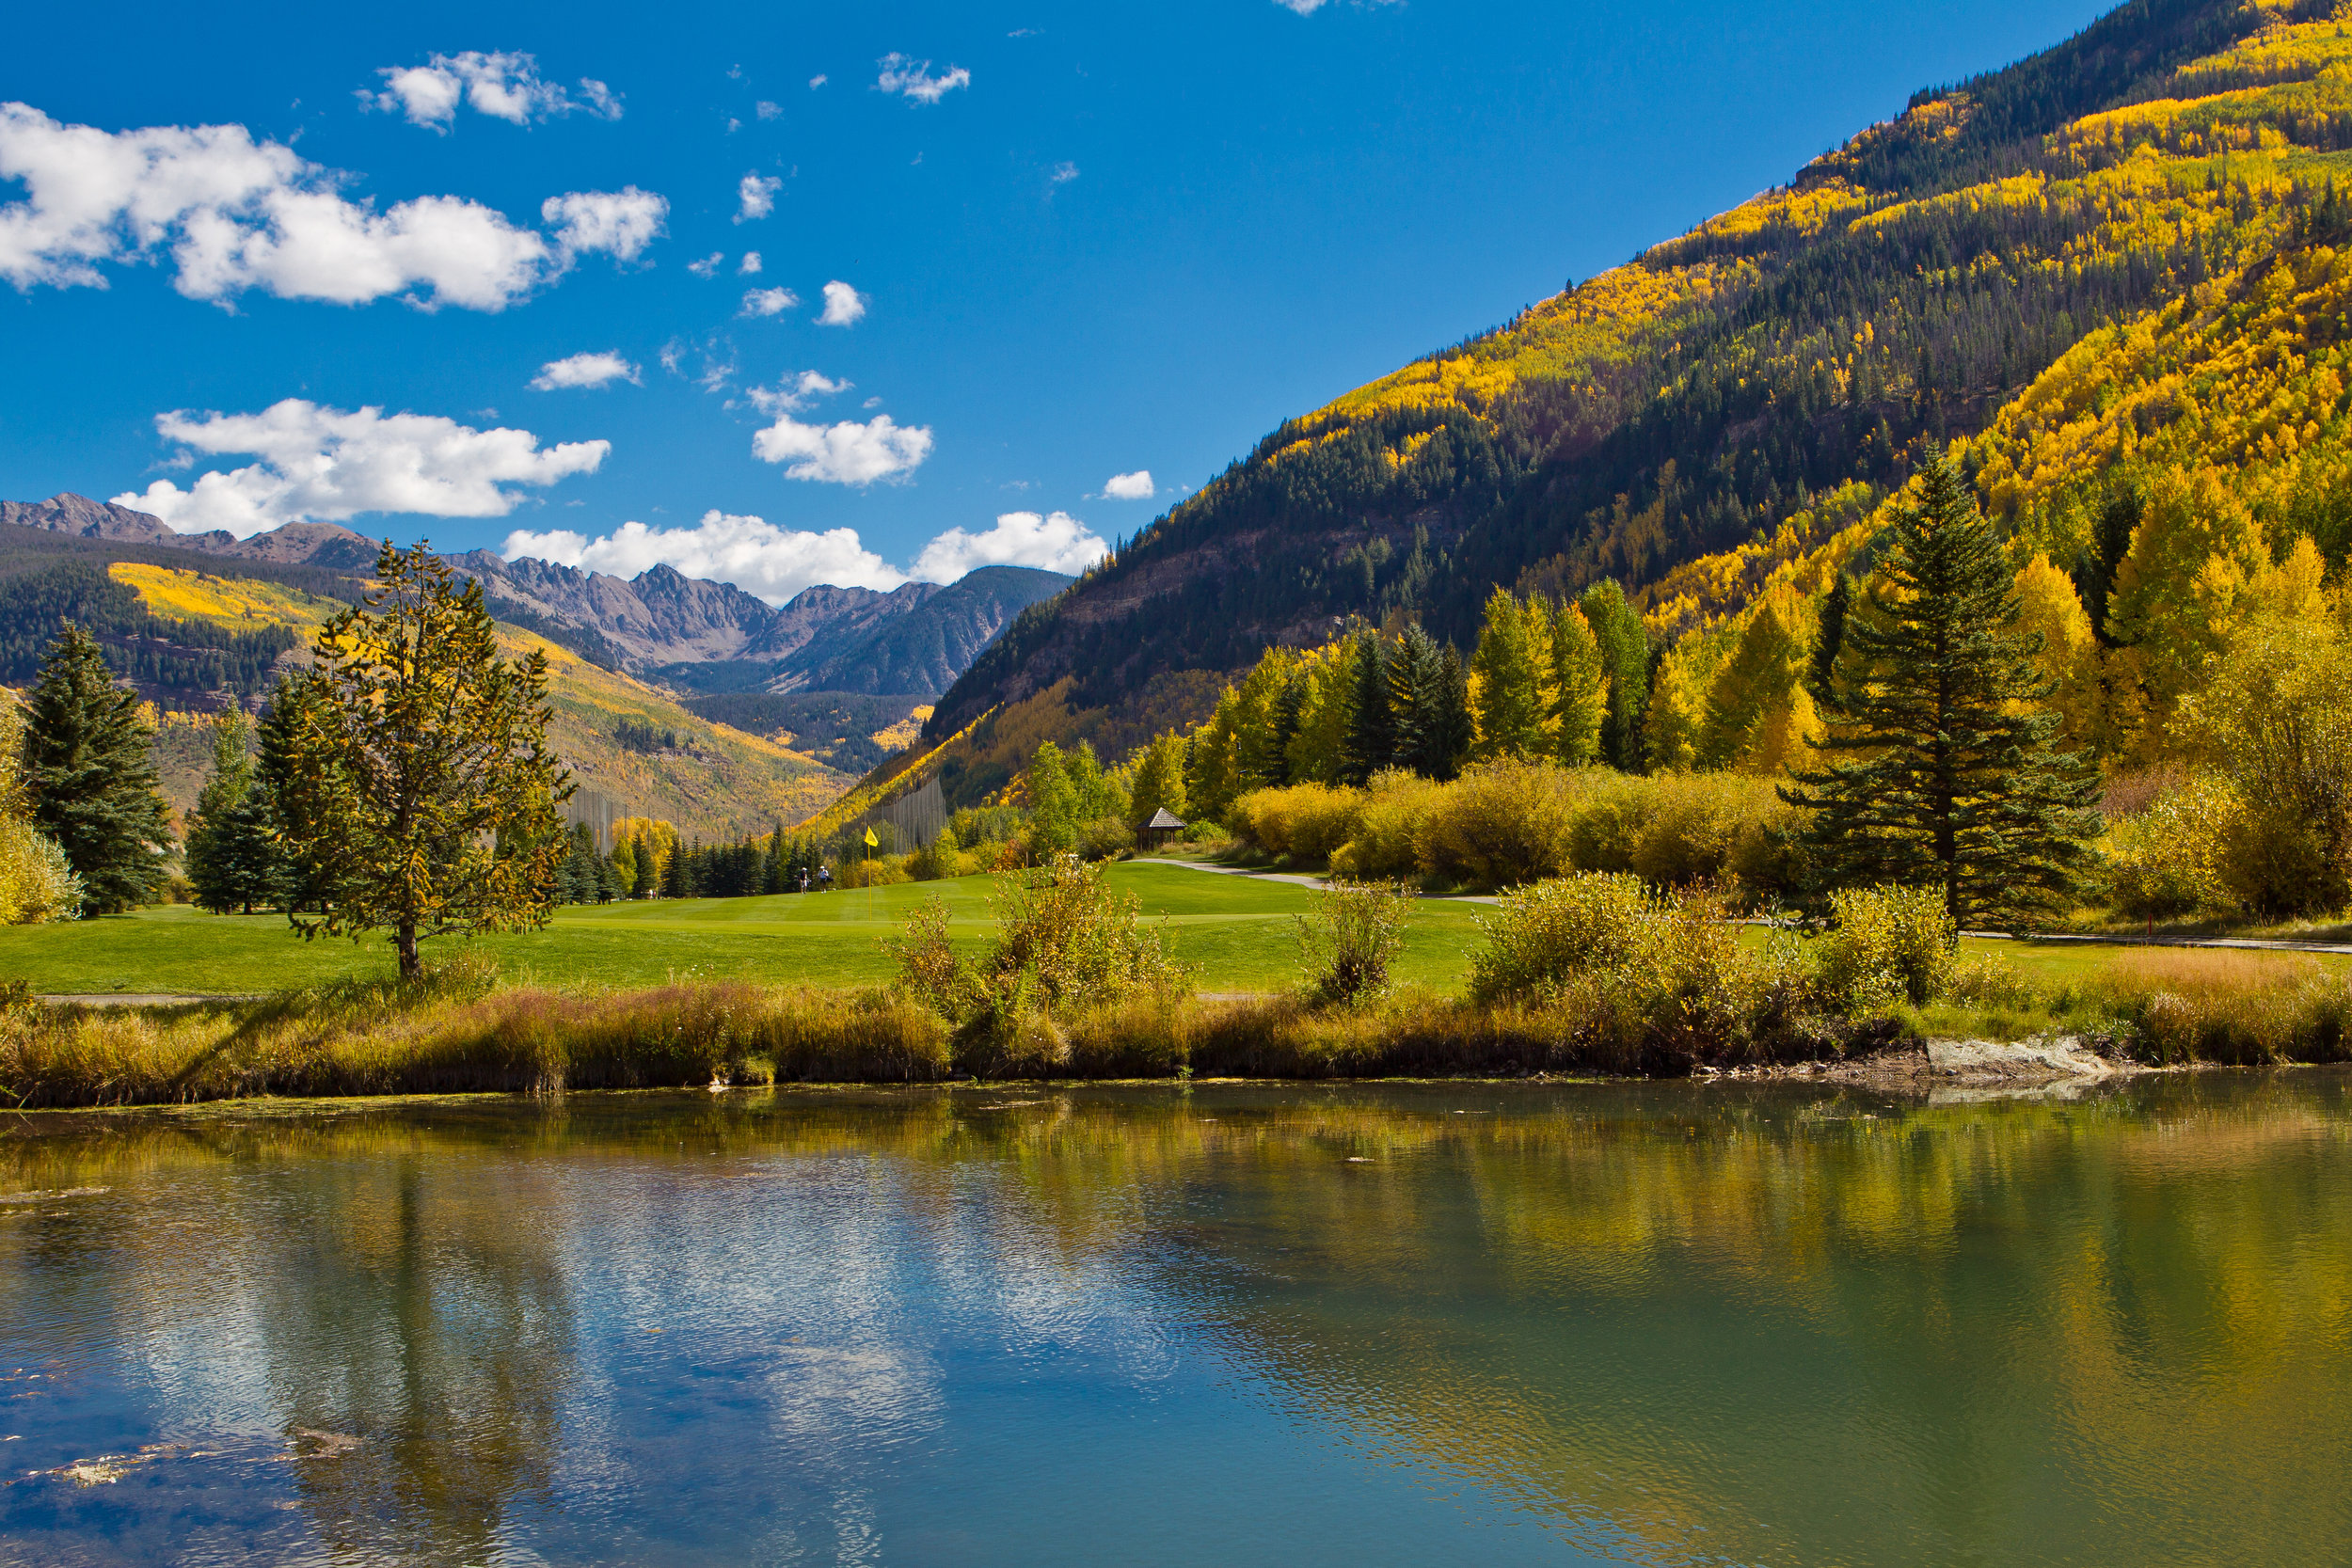 Vail Golf Club is looked over by the Gore Mountain Range